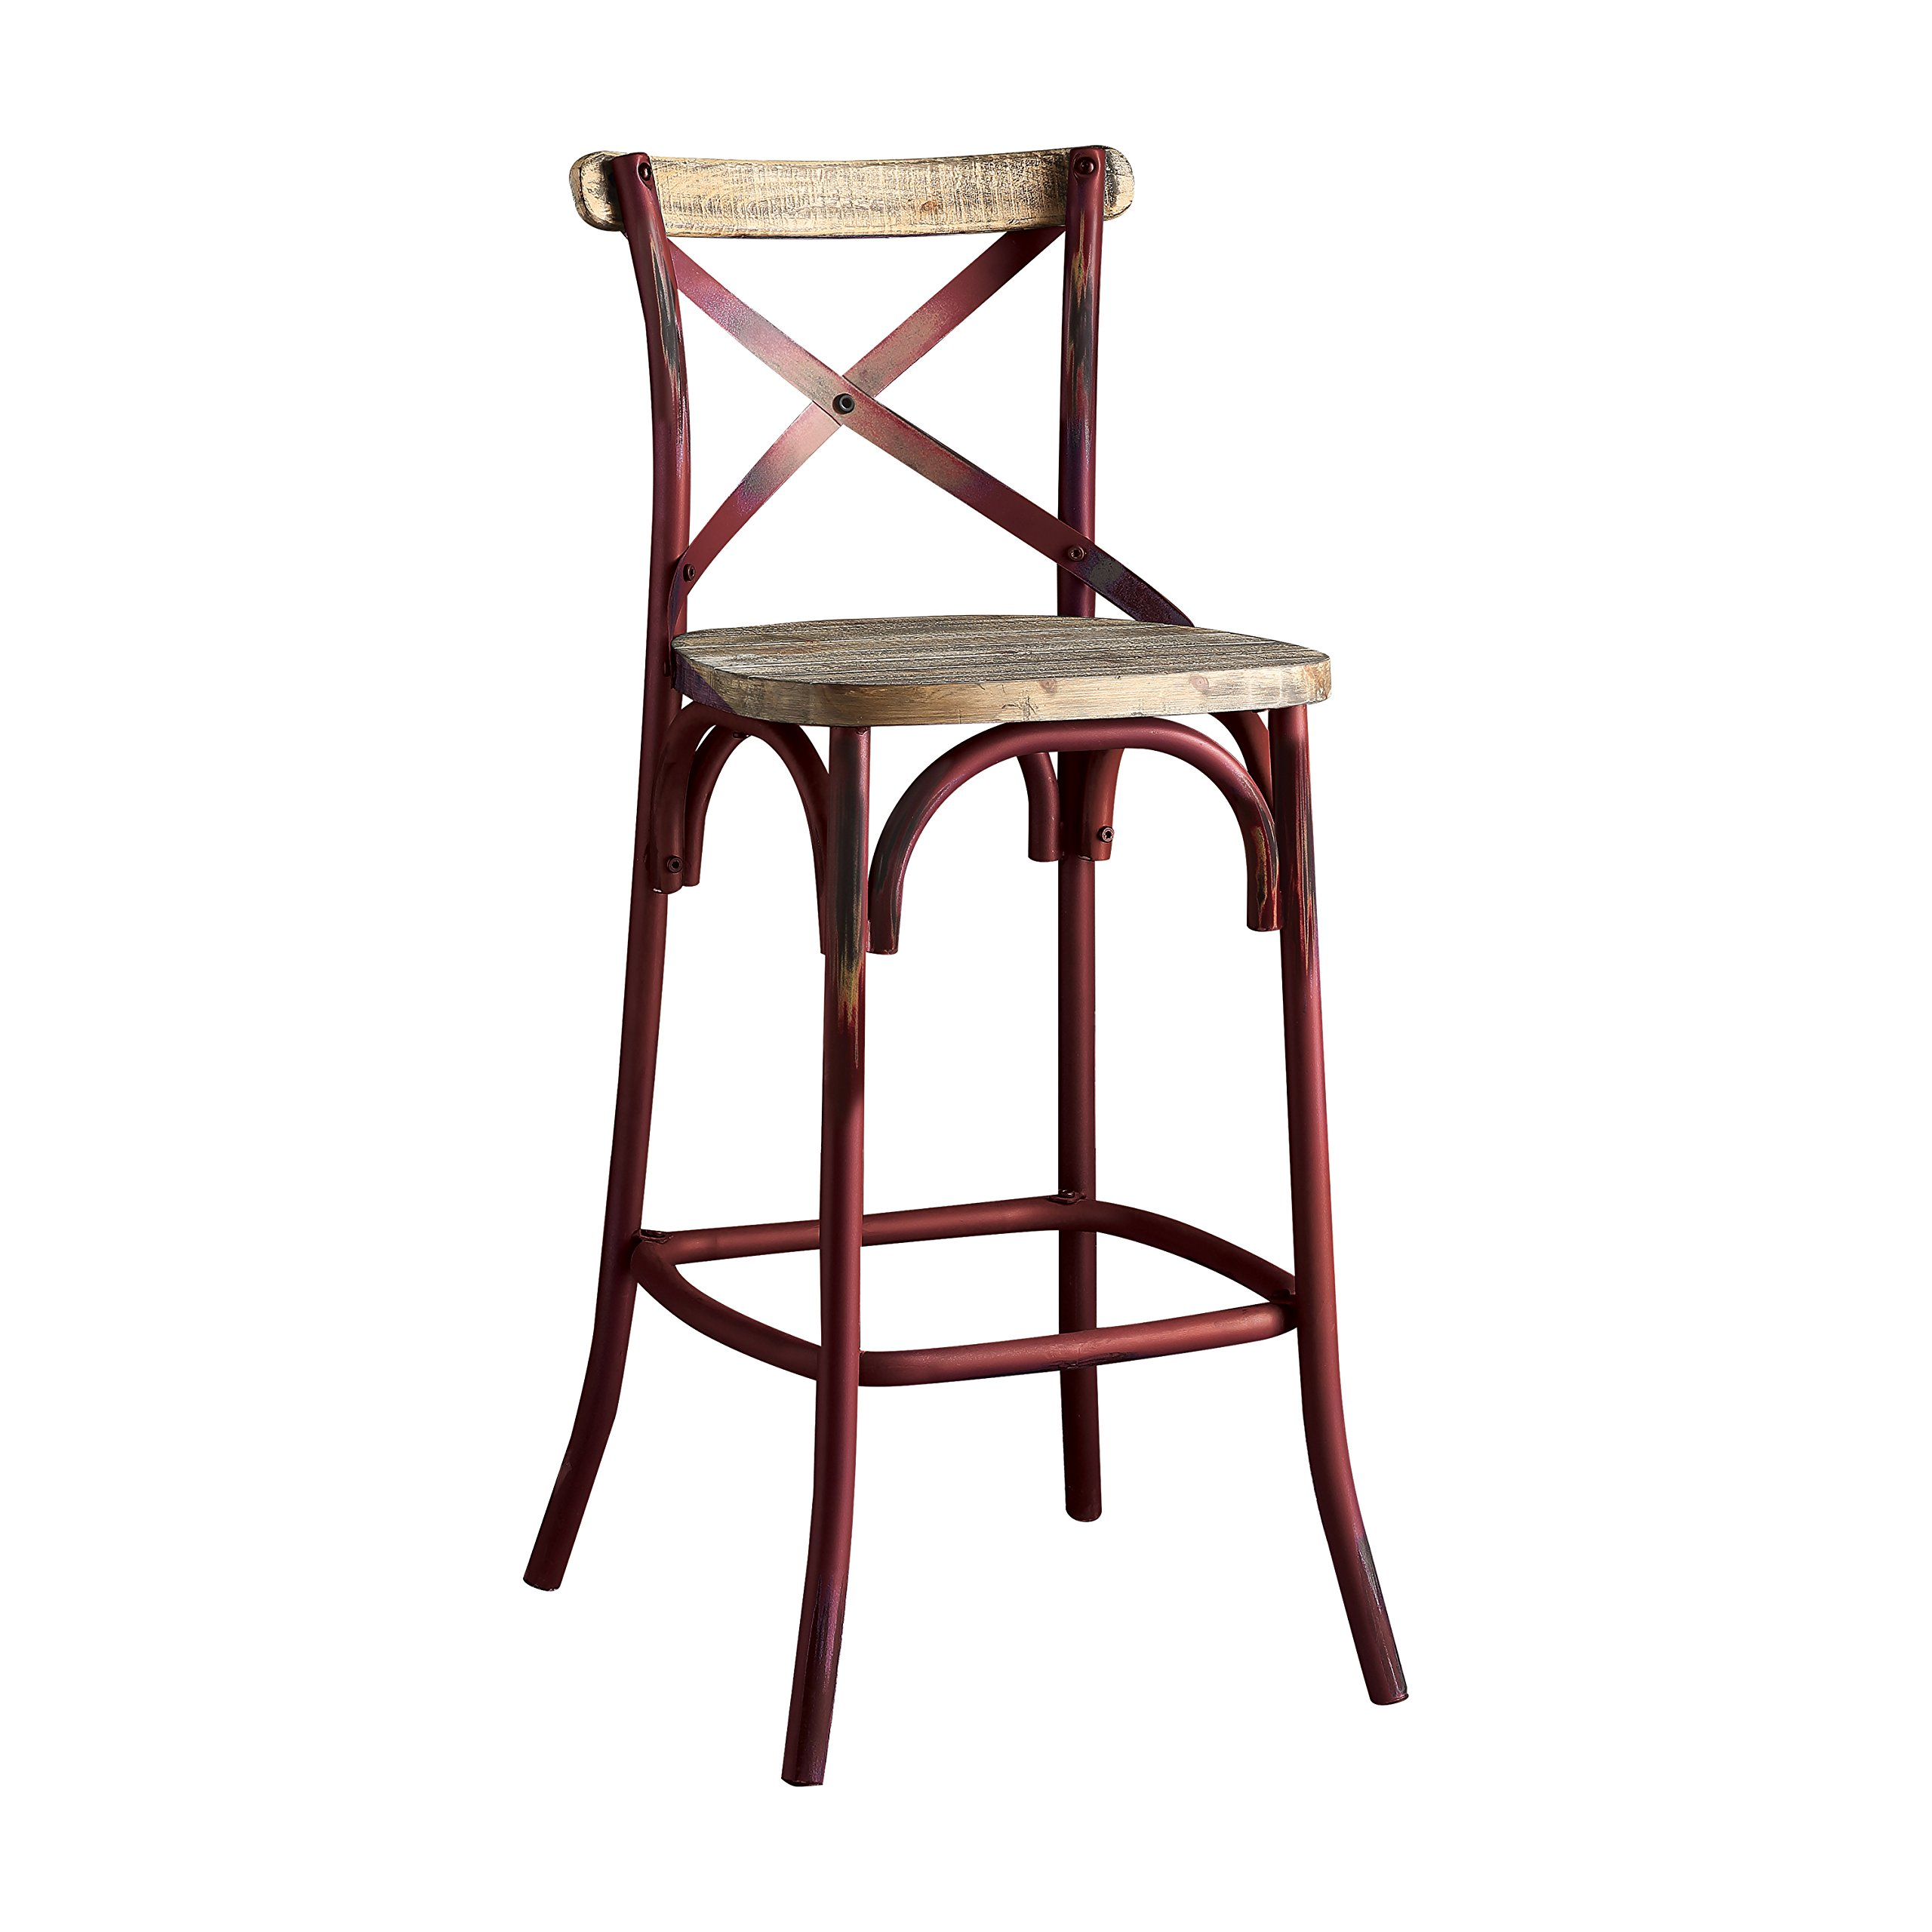 "ACME Zaire Bar Chair (1Pc) - - Antique Red & Antique Oak - 29"" Seat Height"